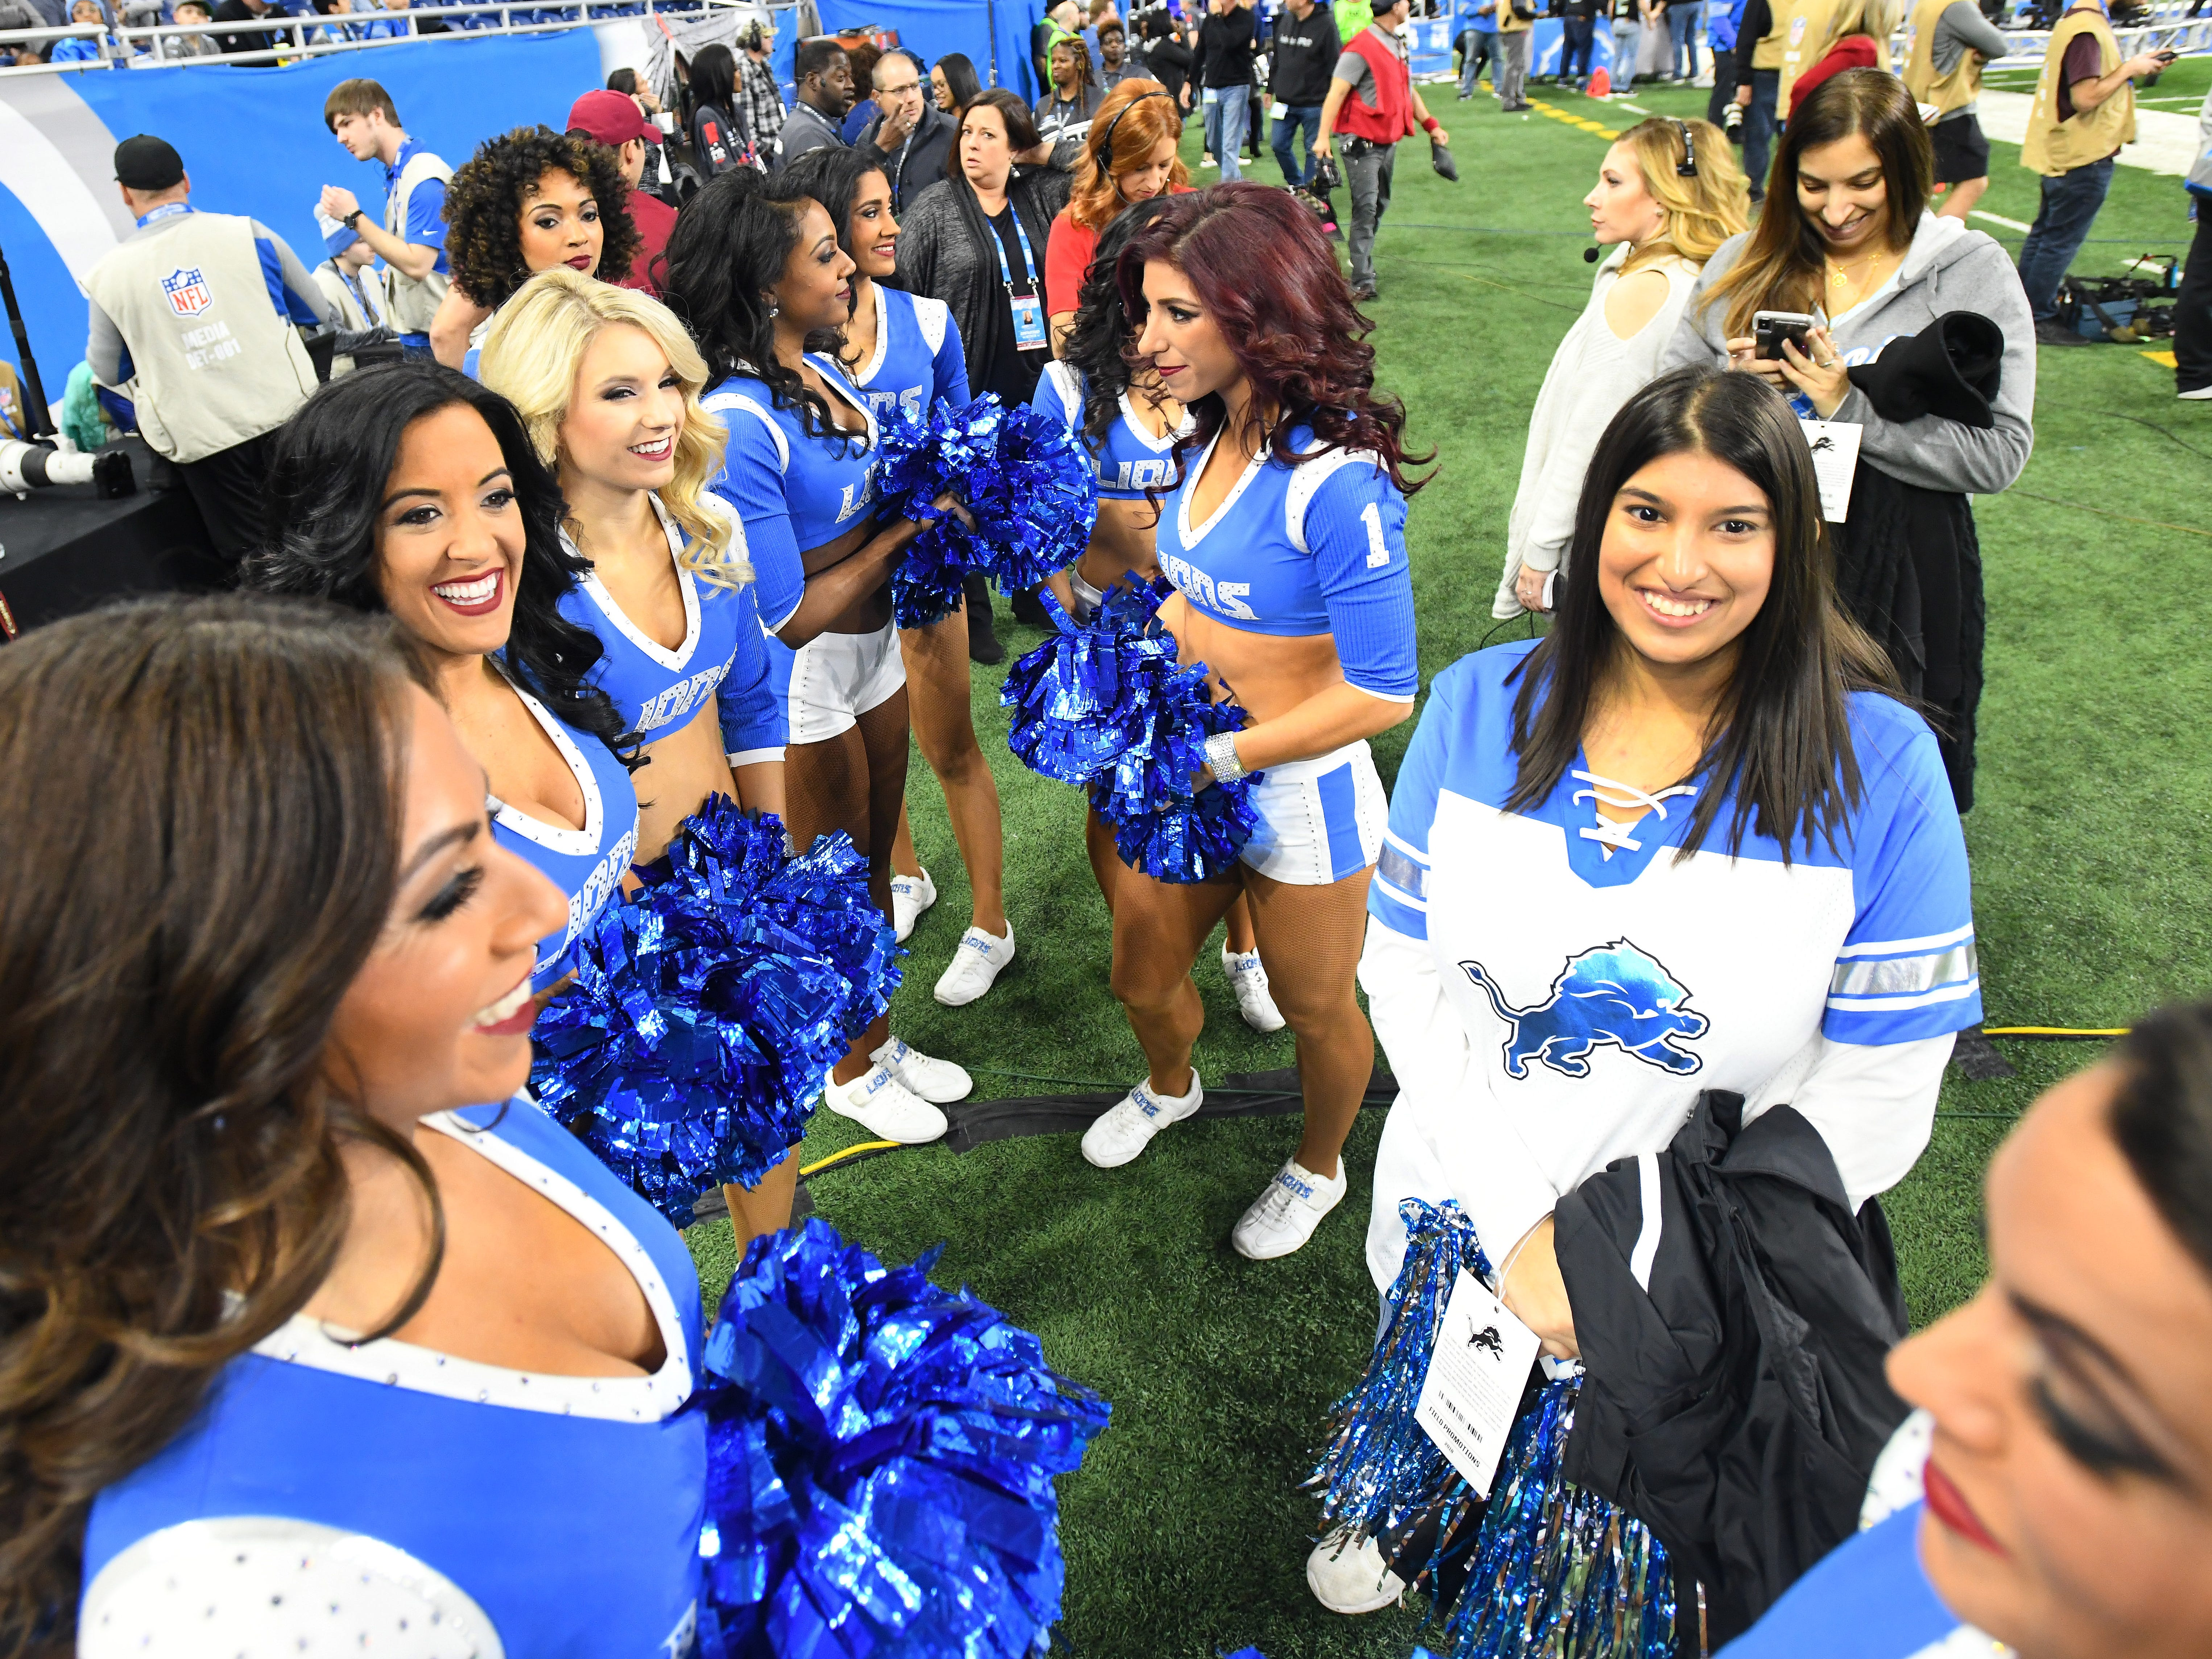 Grand Blanc High School student Hiba Syed meets with the Detroit Lions Cheerleaders on the field before Detroit takes on the Minnesota Vikings at Ford Field.